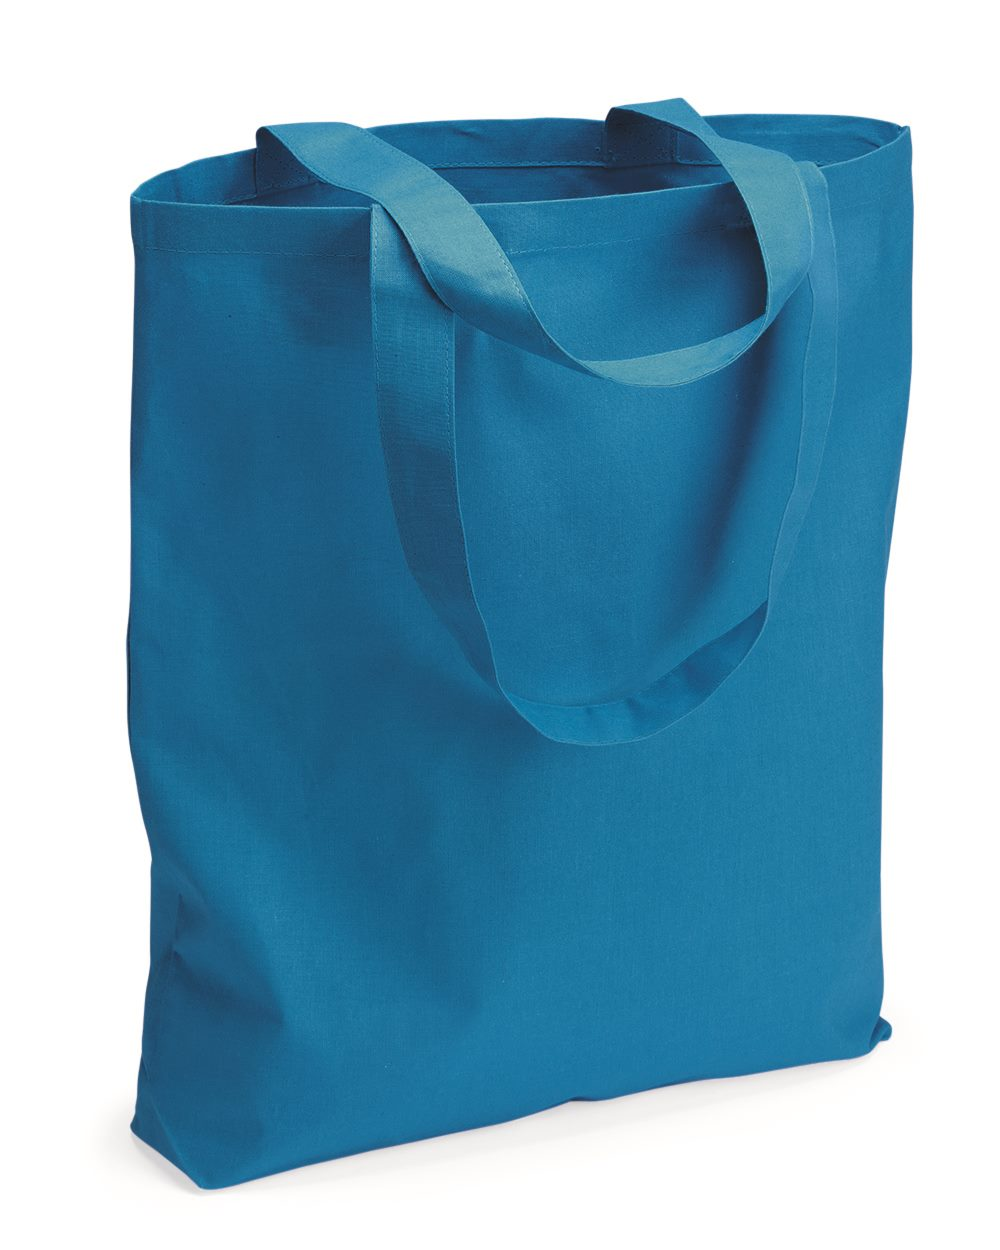 Q-Tees QTBG - 11.7L Economical Gusseted Tote